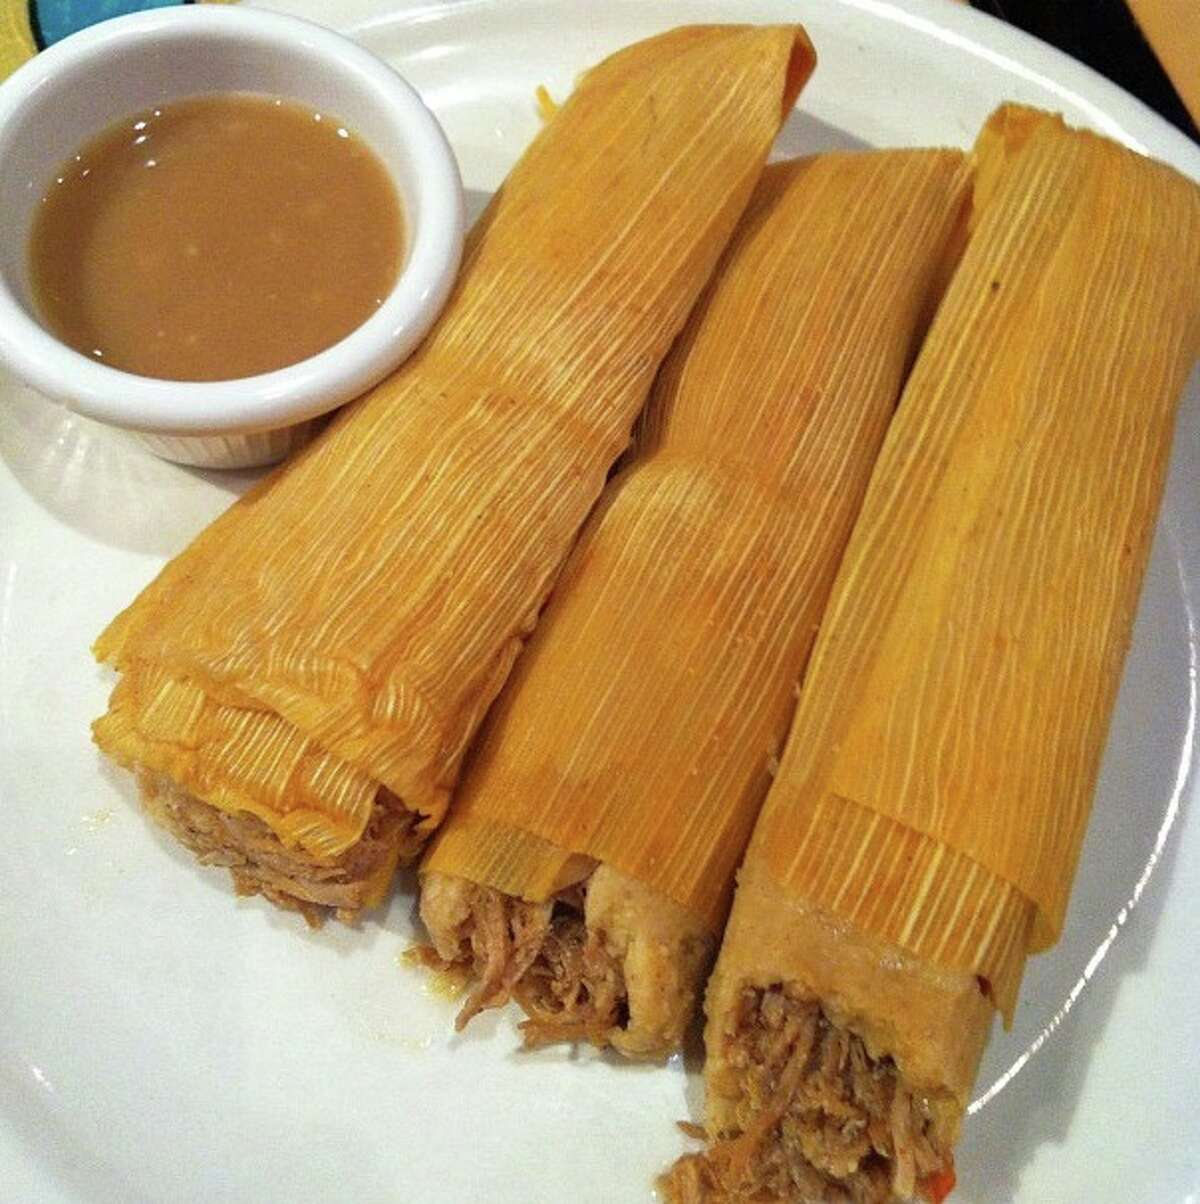 November marks the return of seasonal turkey tamales from Berryhill Baja Grill and Cantina in Houston.